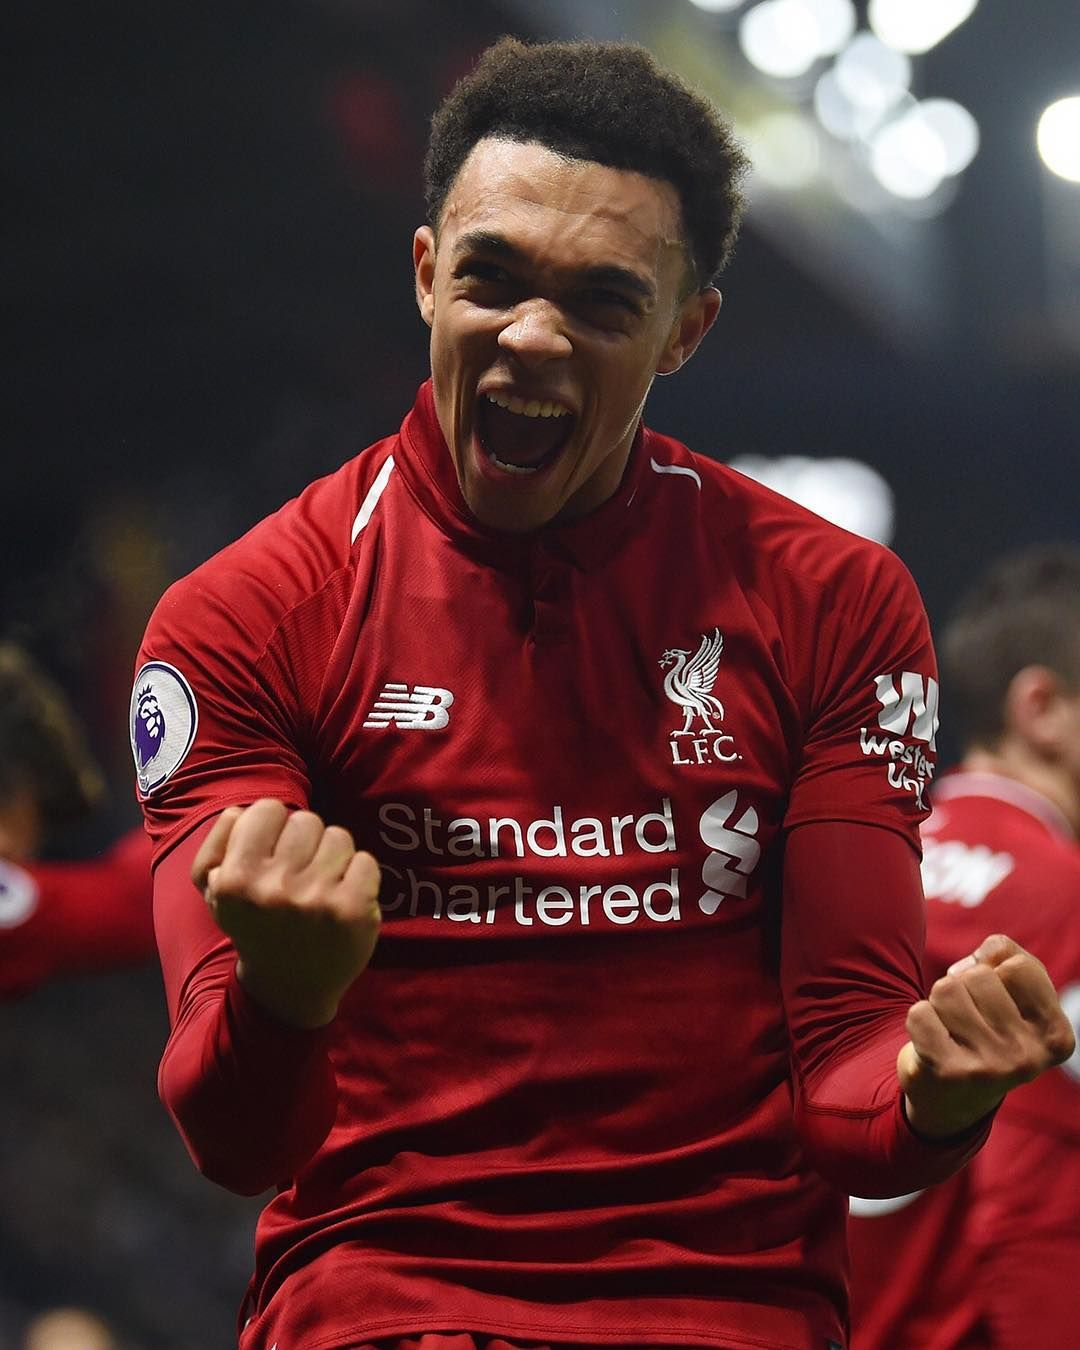 Go On Trent Liverpool Football Club Best Football Players Liverpool Football